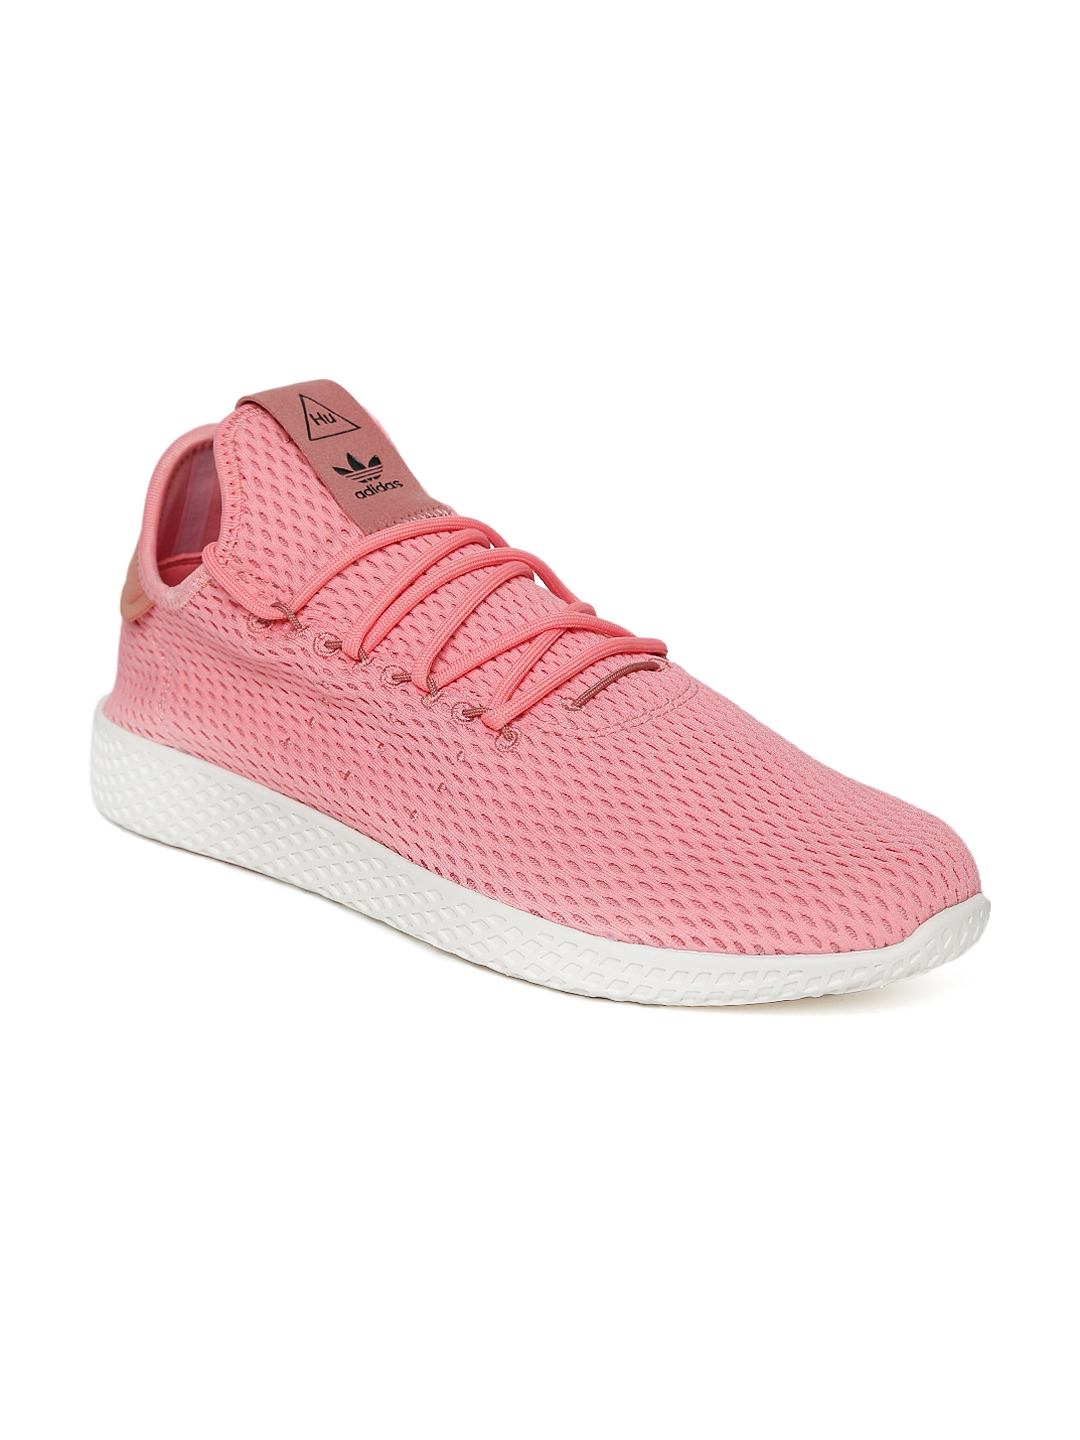 super popular 57b53 15bdc ADIDAS Originals Men Pink Pharrell William Tennis HU Shoes